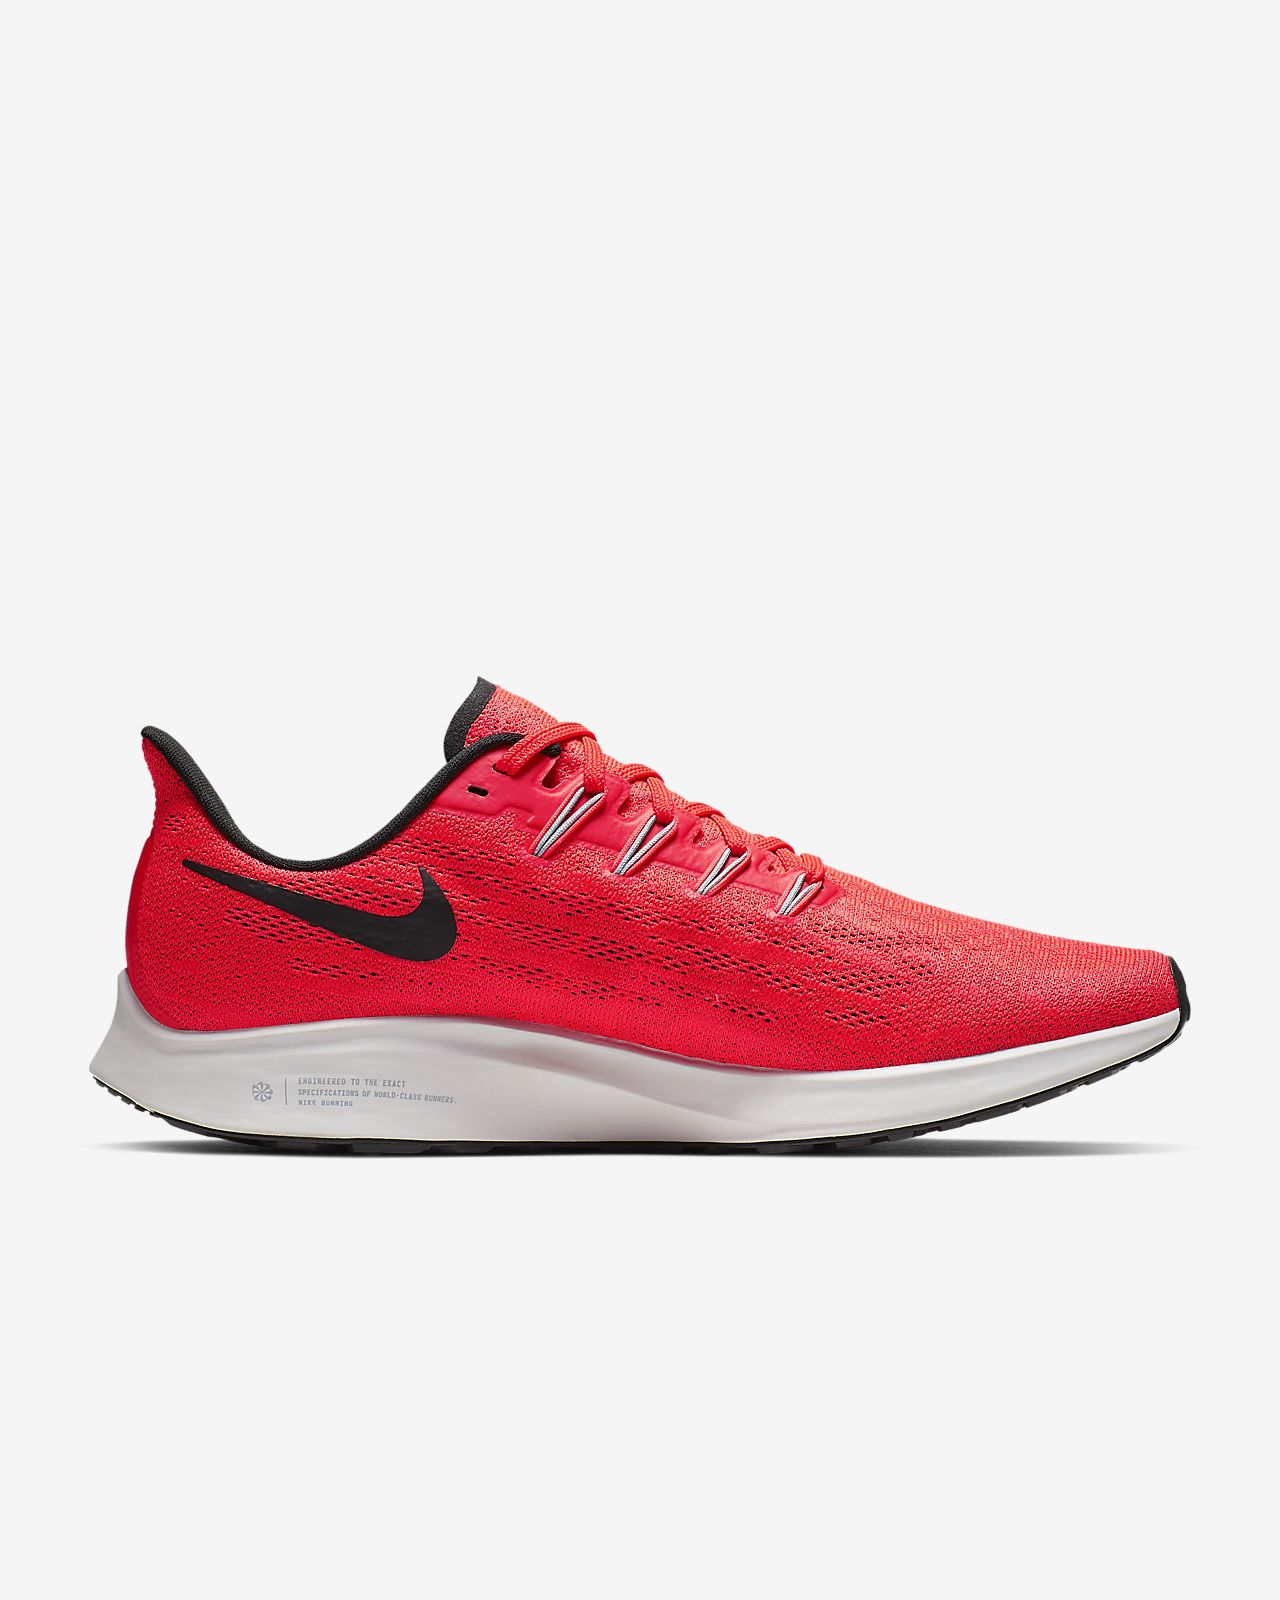 a0b6709abebc Nike Air Zoom Pegasus 36 Men's Running Shoe. Nike.com LU